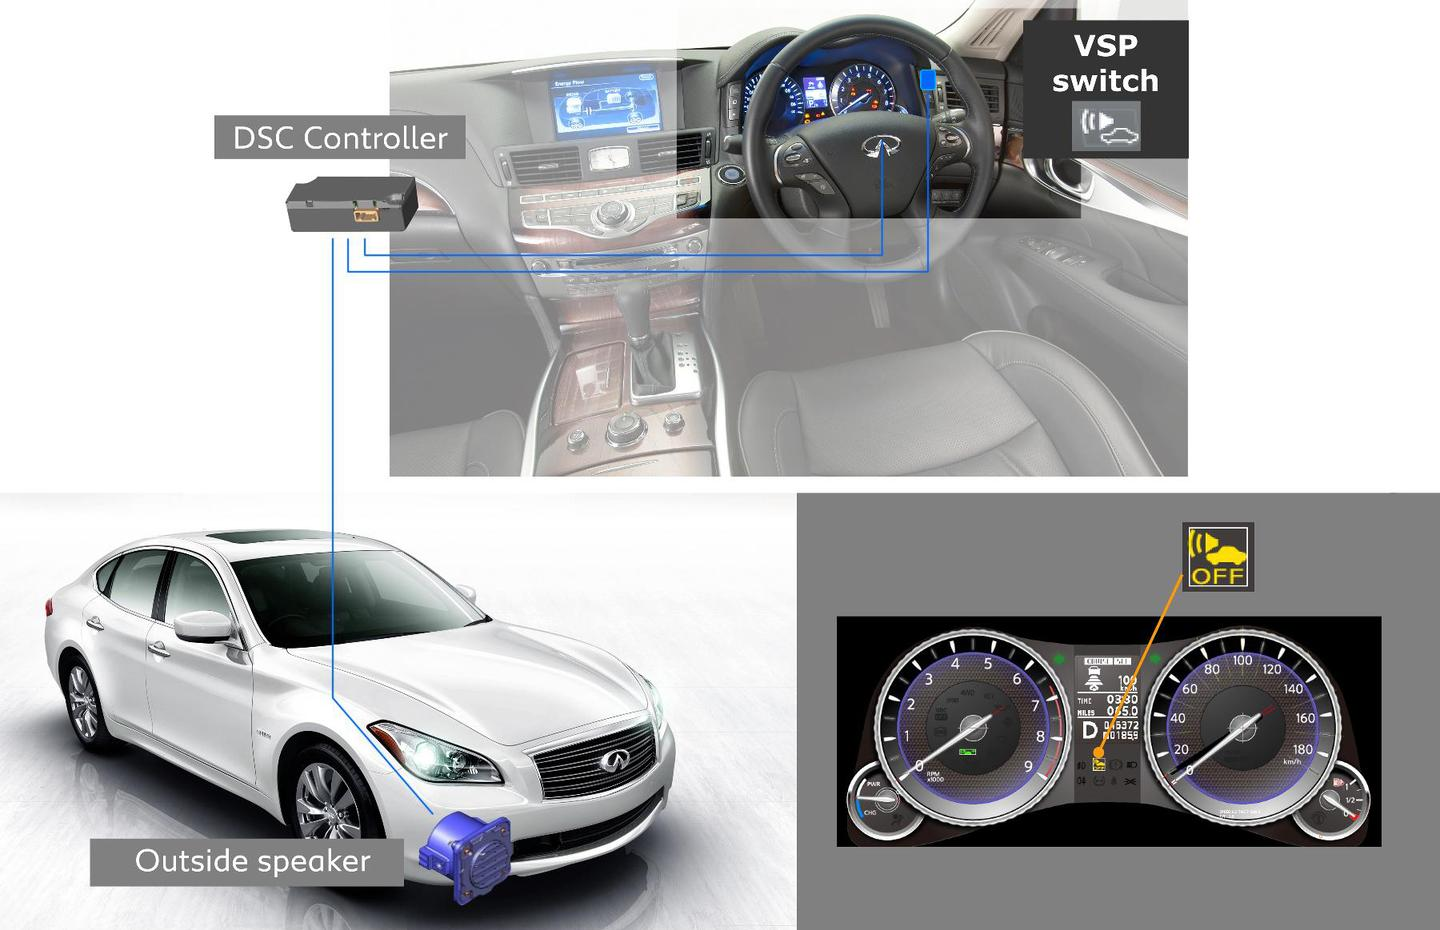 The Approaching Vehicle Sound for Pedestrians (VSP) system